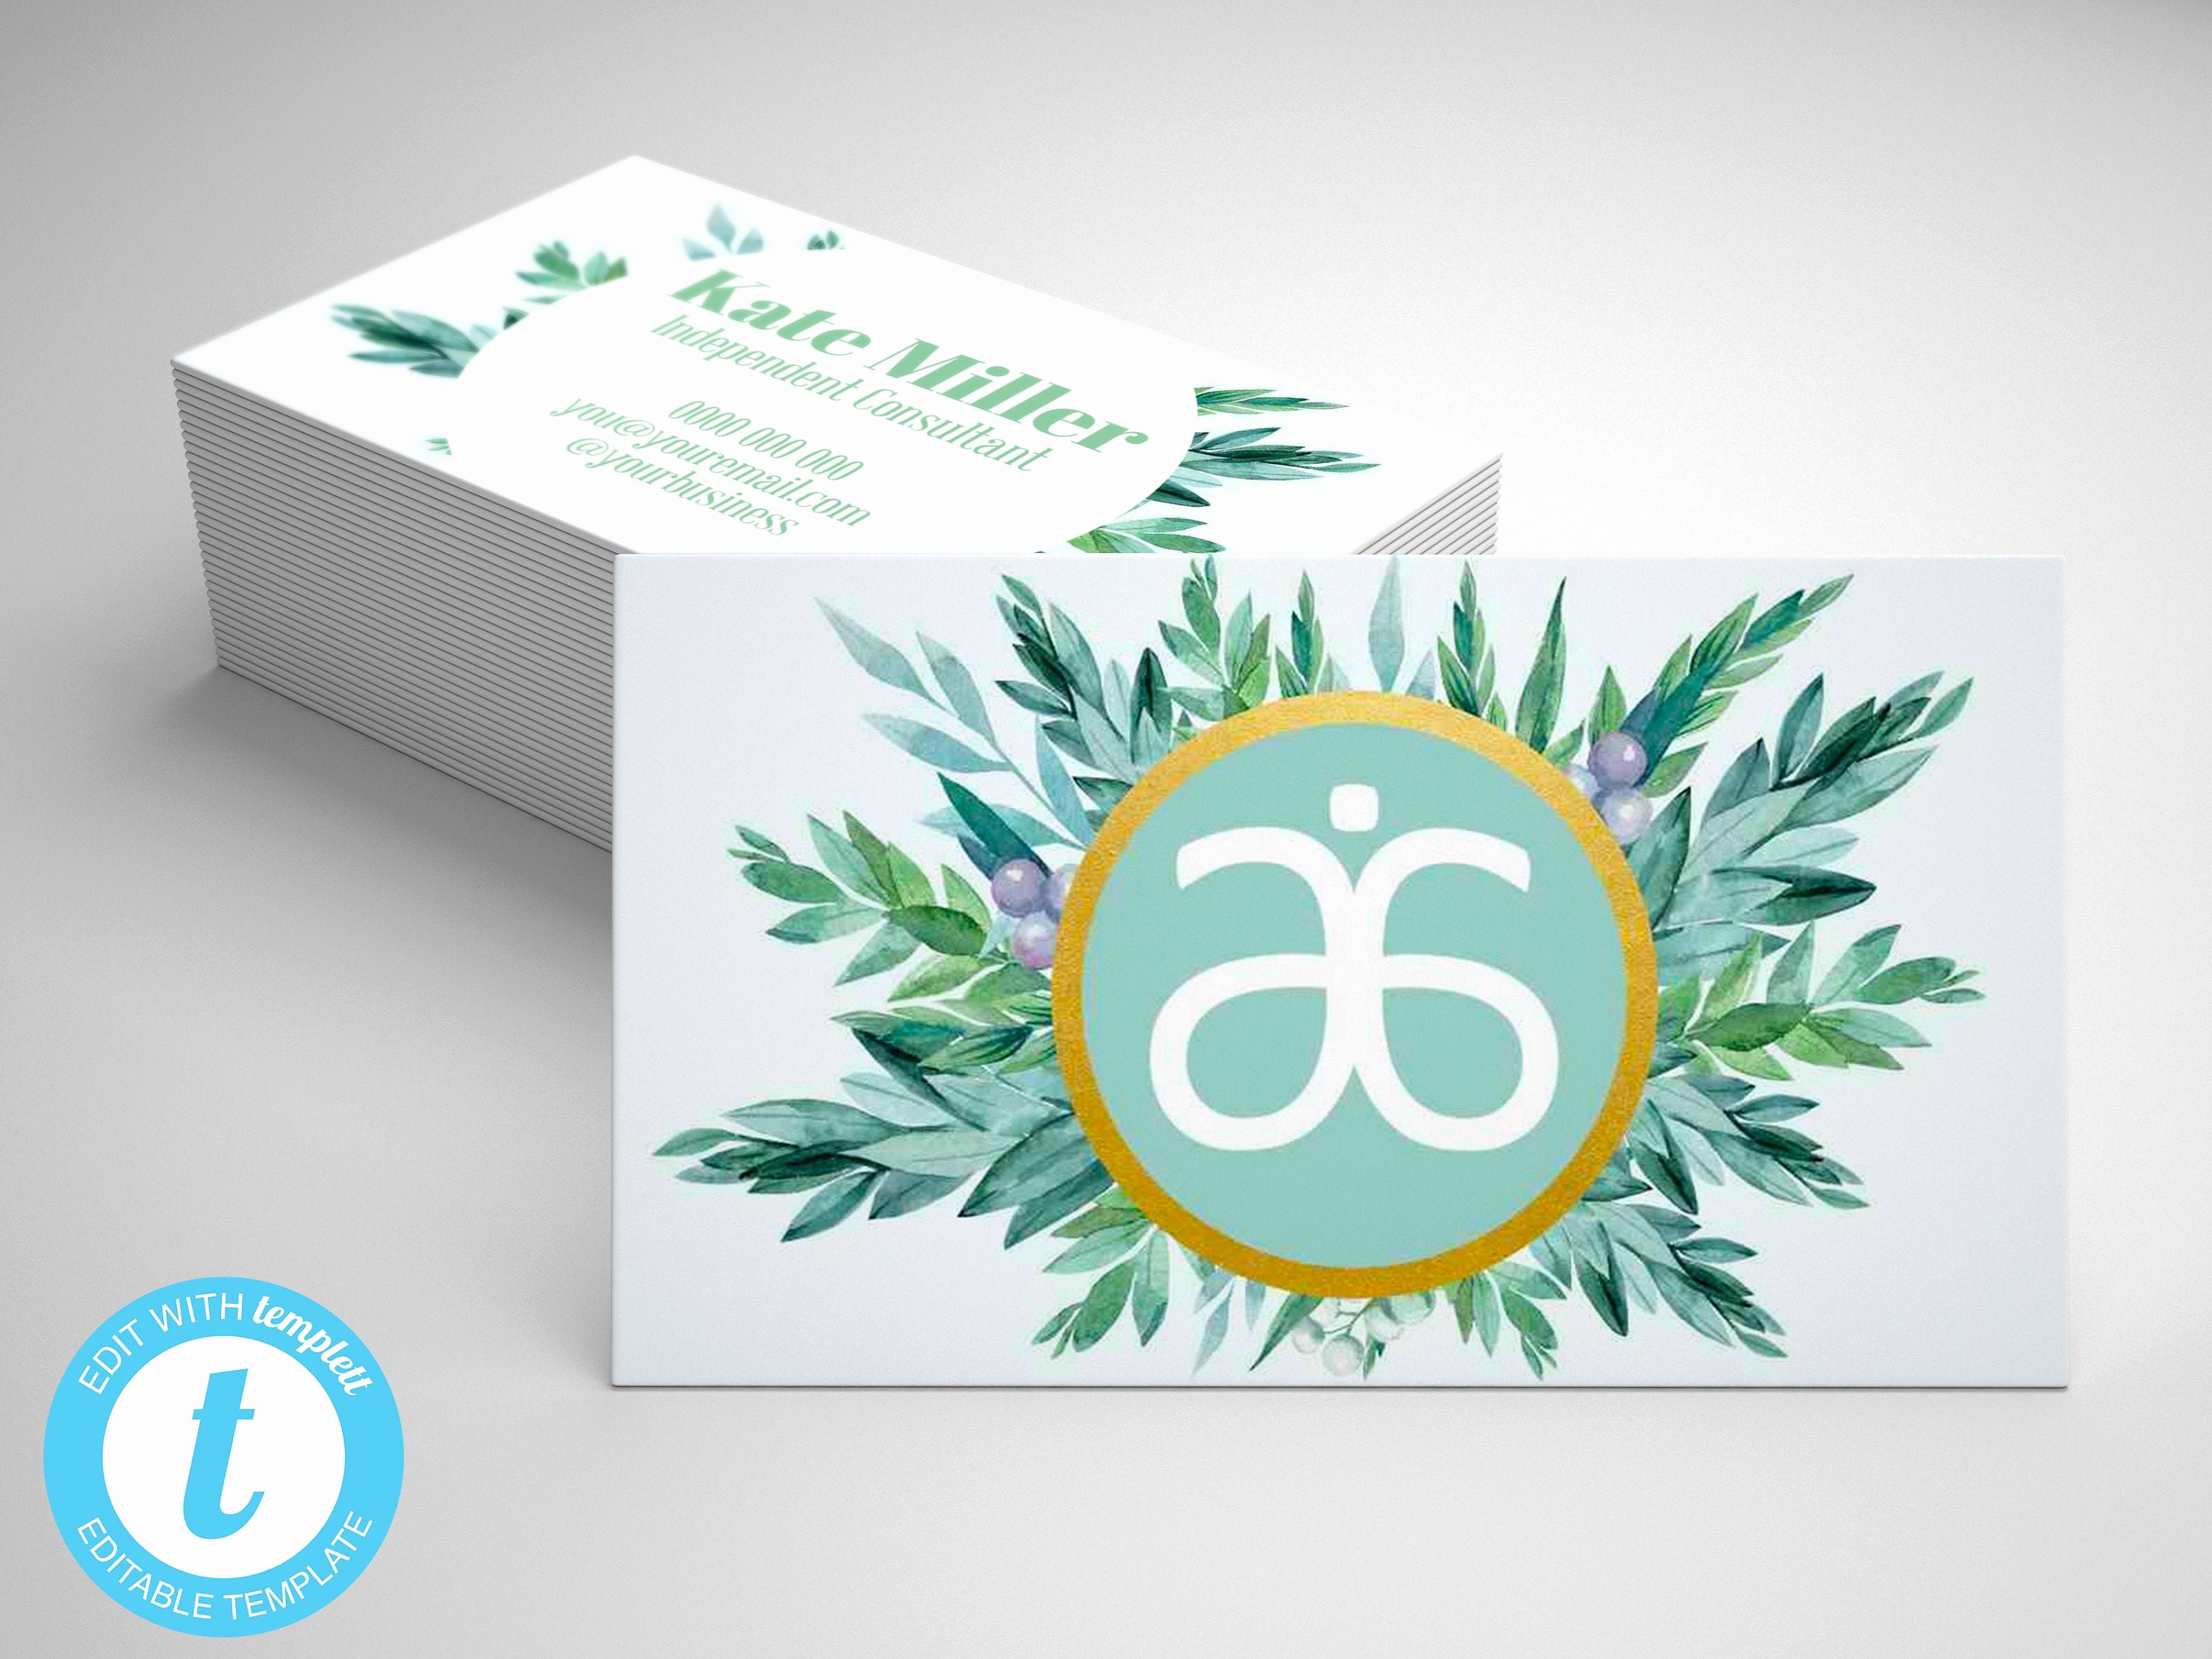 Arbonne Business Cards Template Awesome Arbonne Business Card Template Editable Arbonne Business